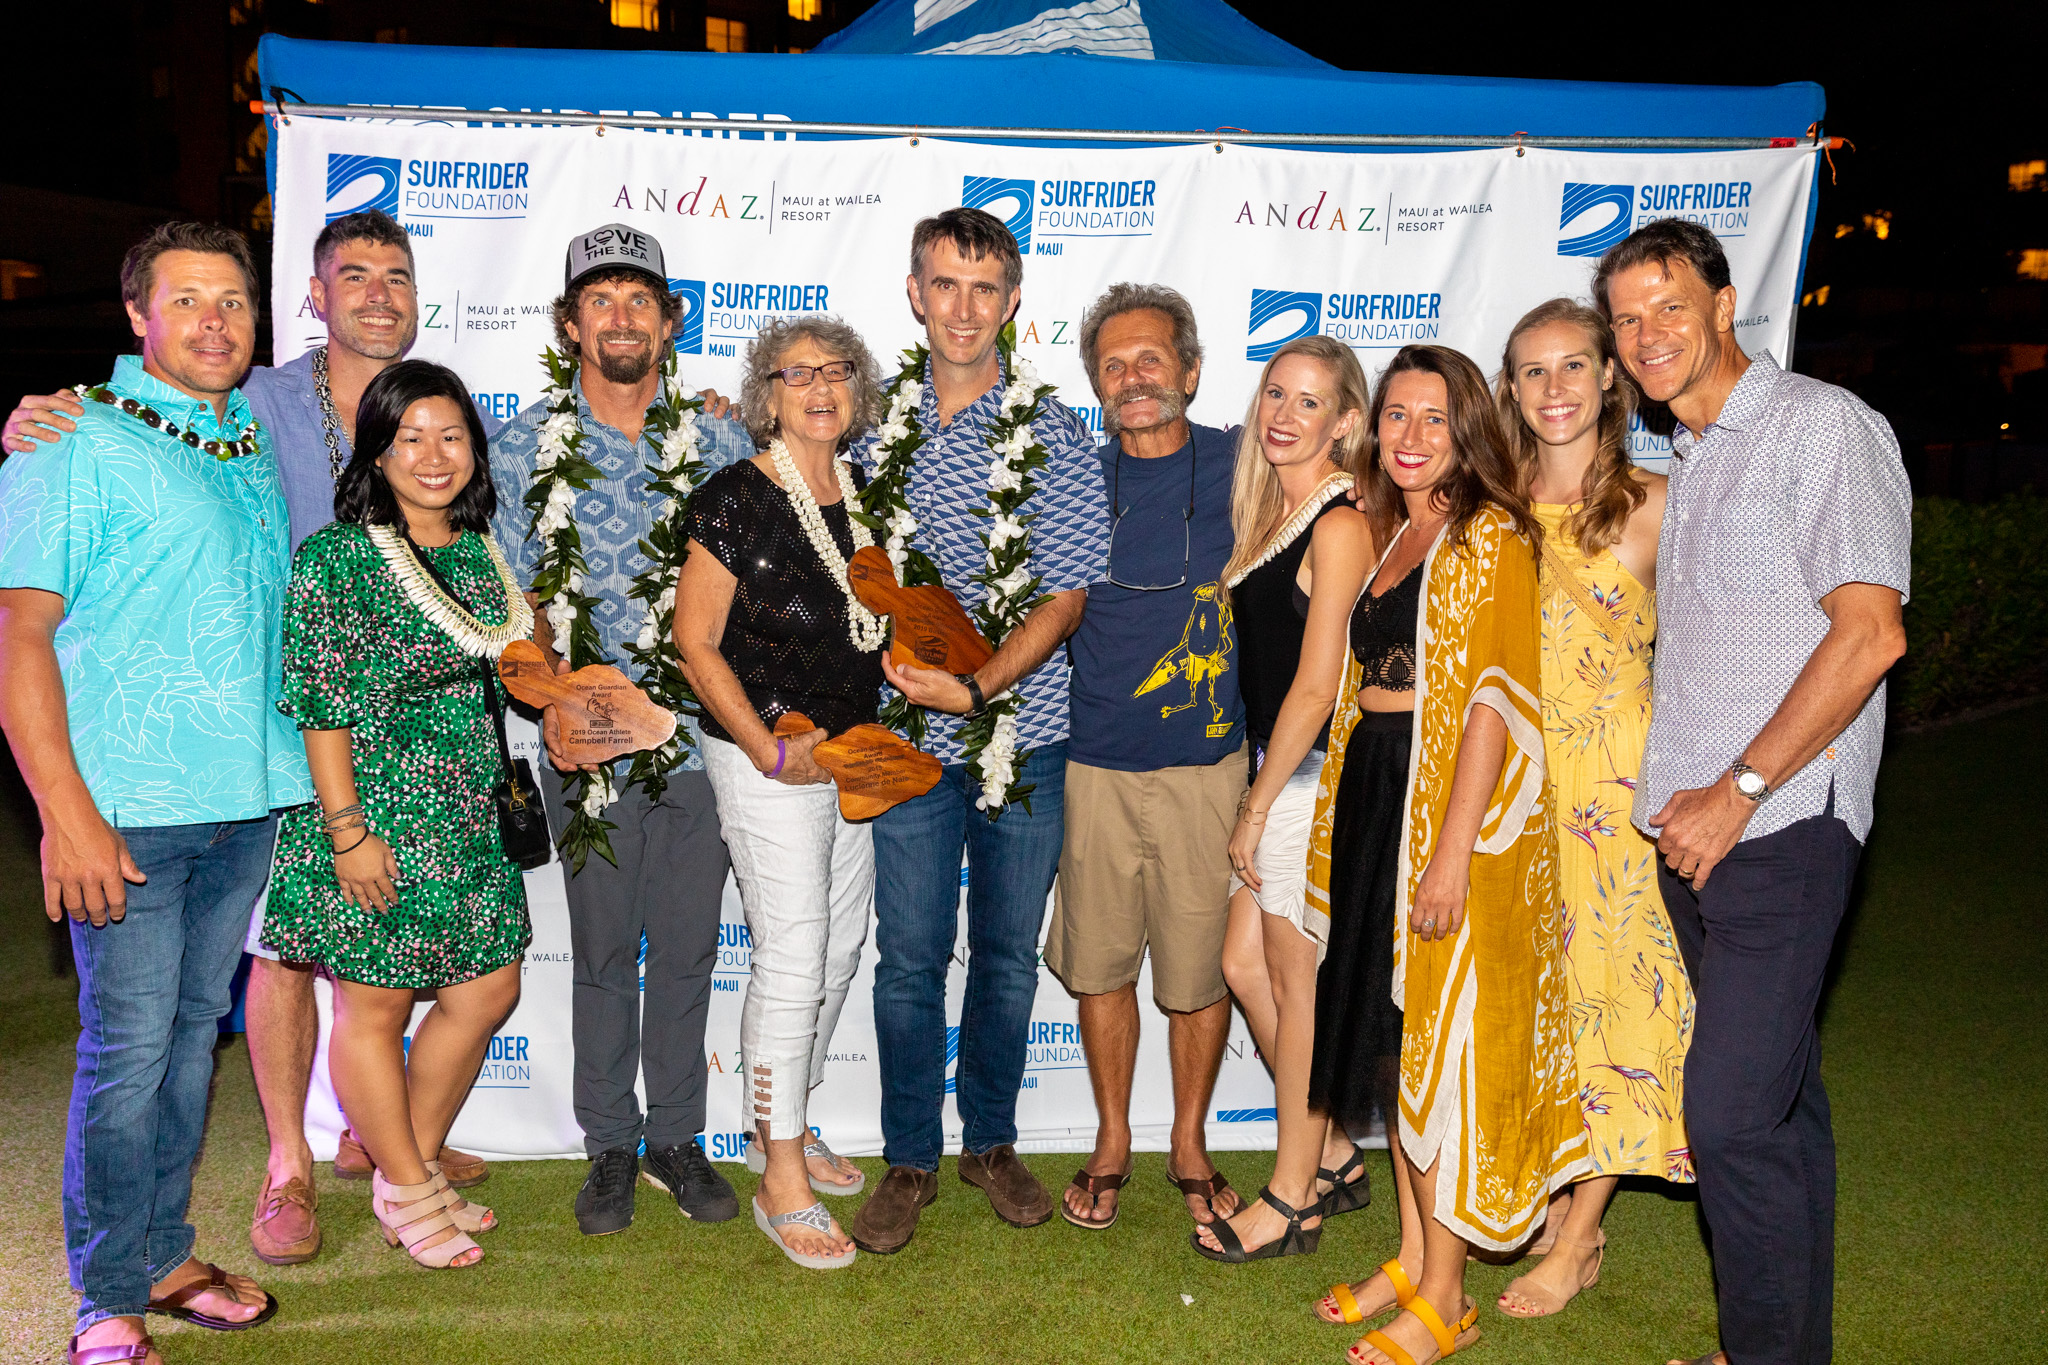 Surfrider-Foundation-OGA-10-12-19_132_web_berkowitz